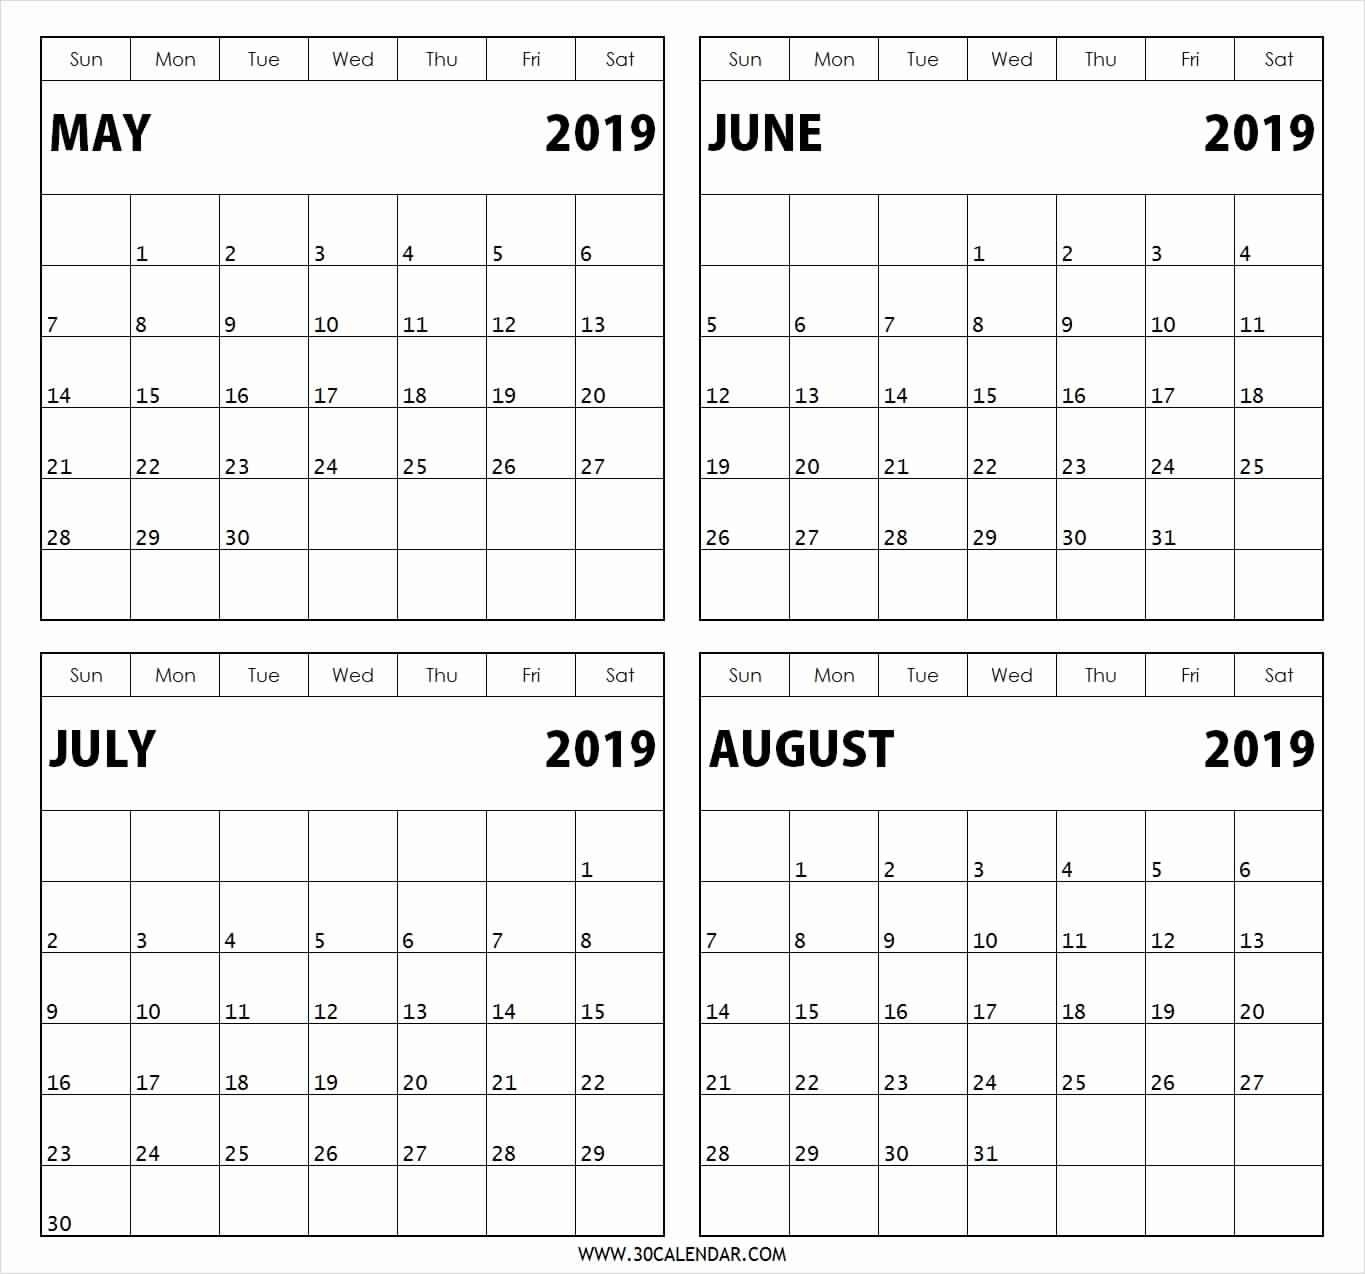 Free Printable Calendar 3 Months Per Page 2019 • Printable  2020 Calendar Printable 3 Months Per Page